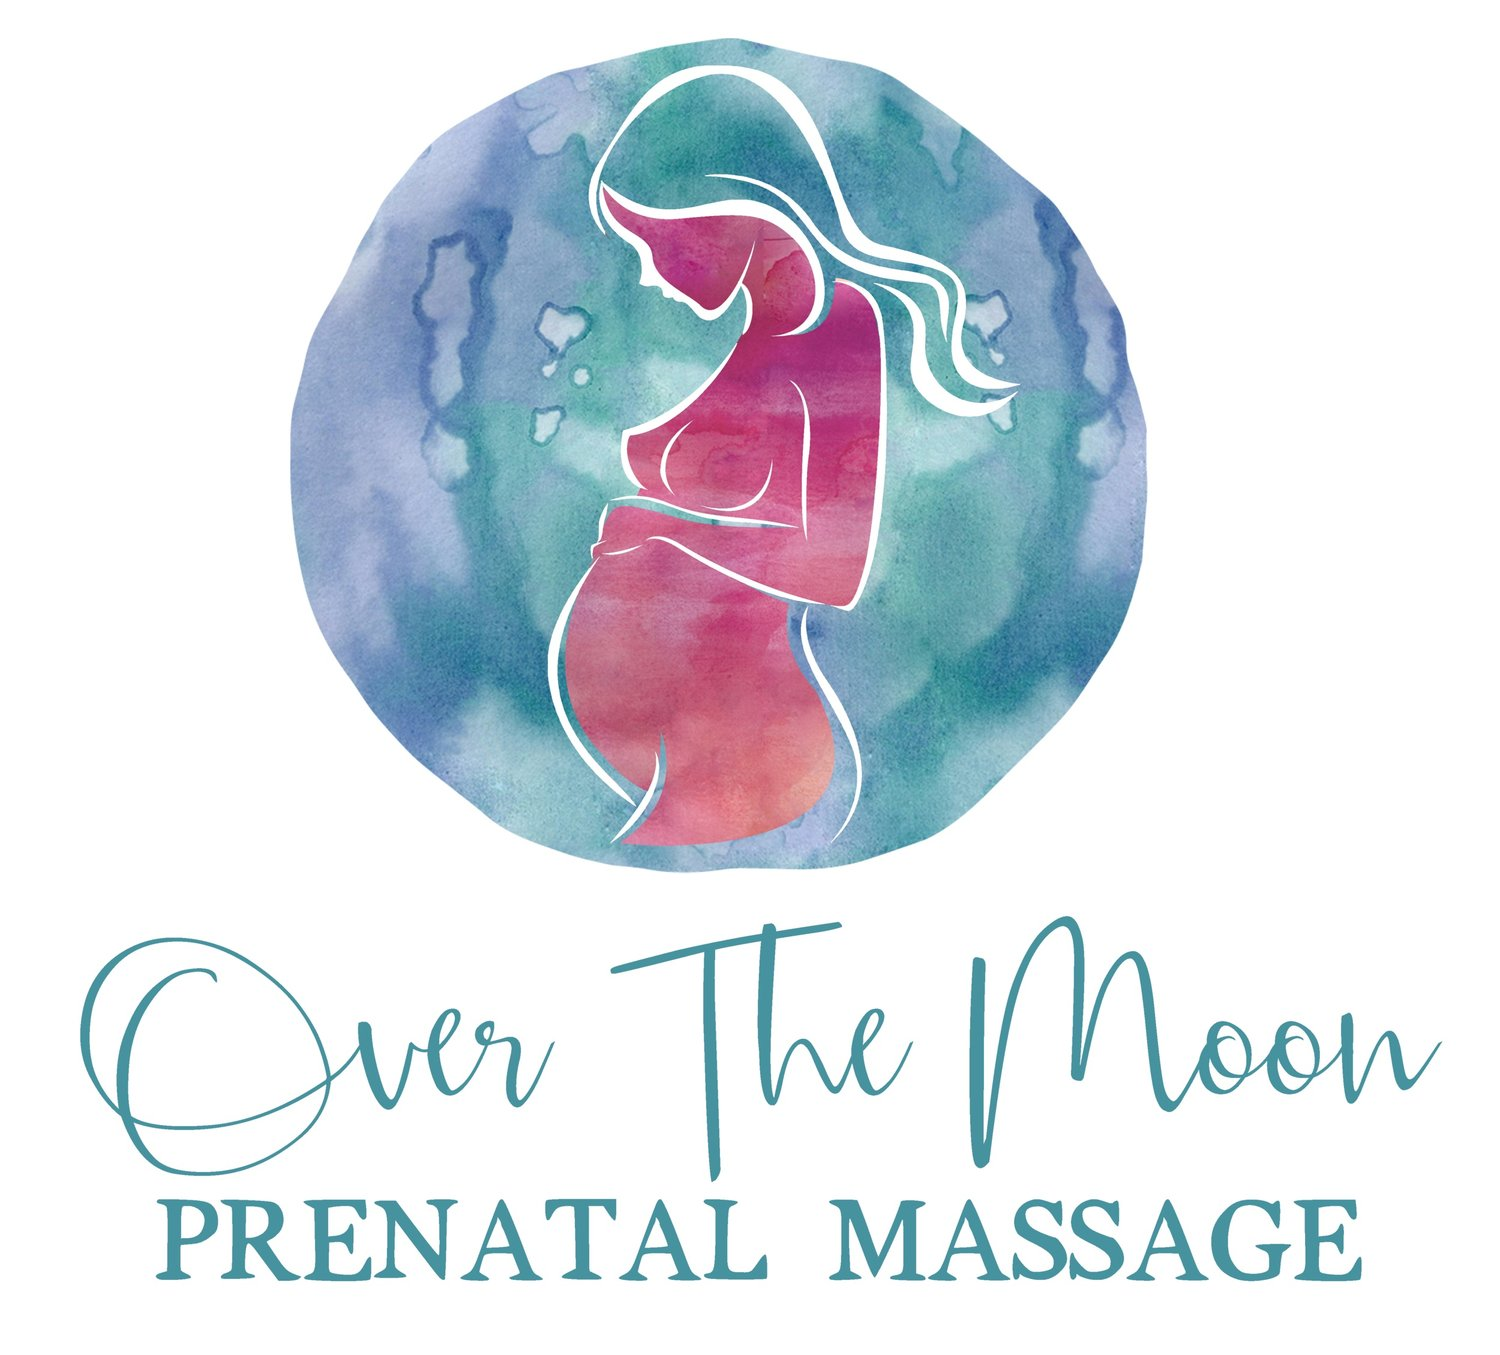 Over The Moon Prenatal Massage